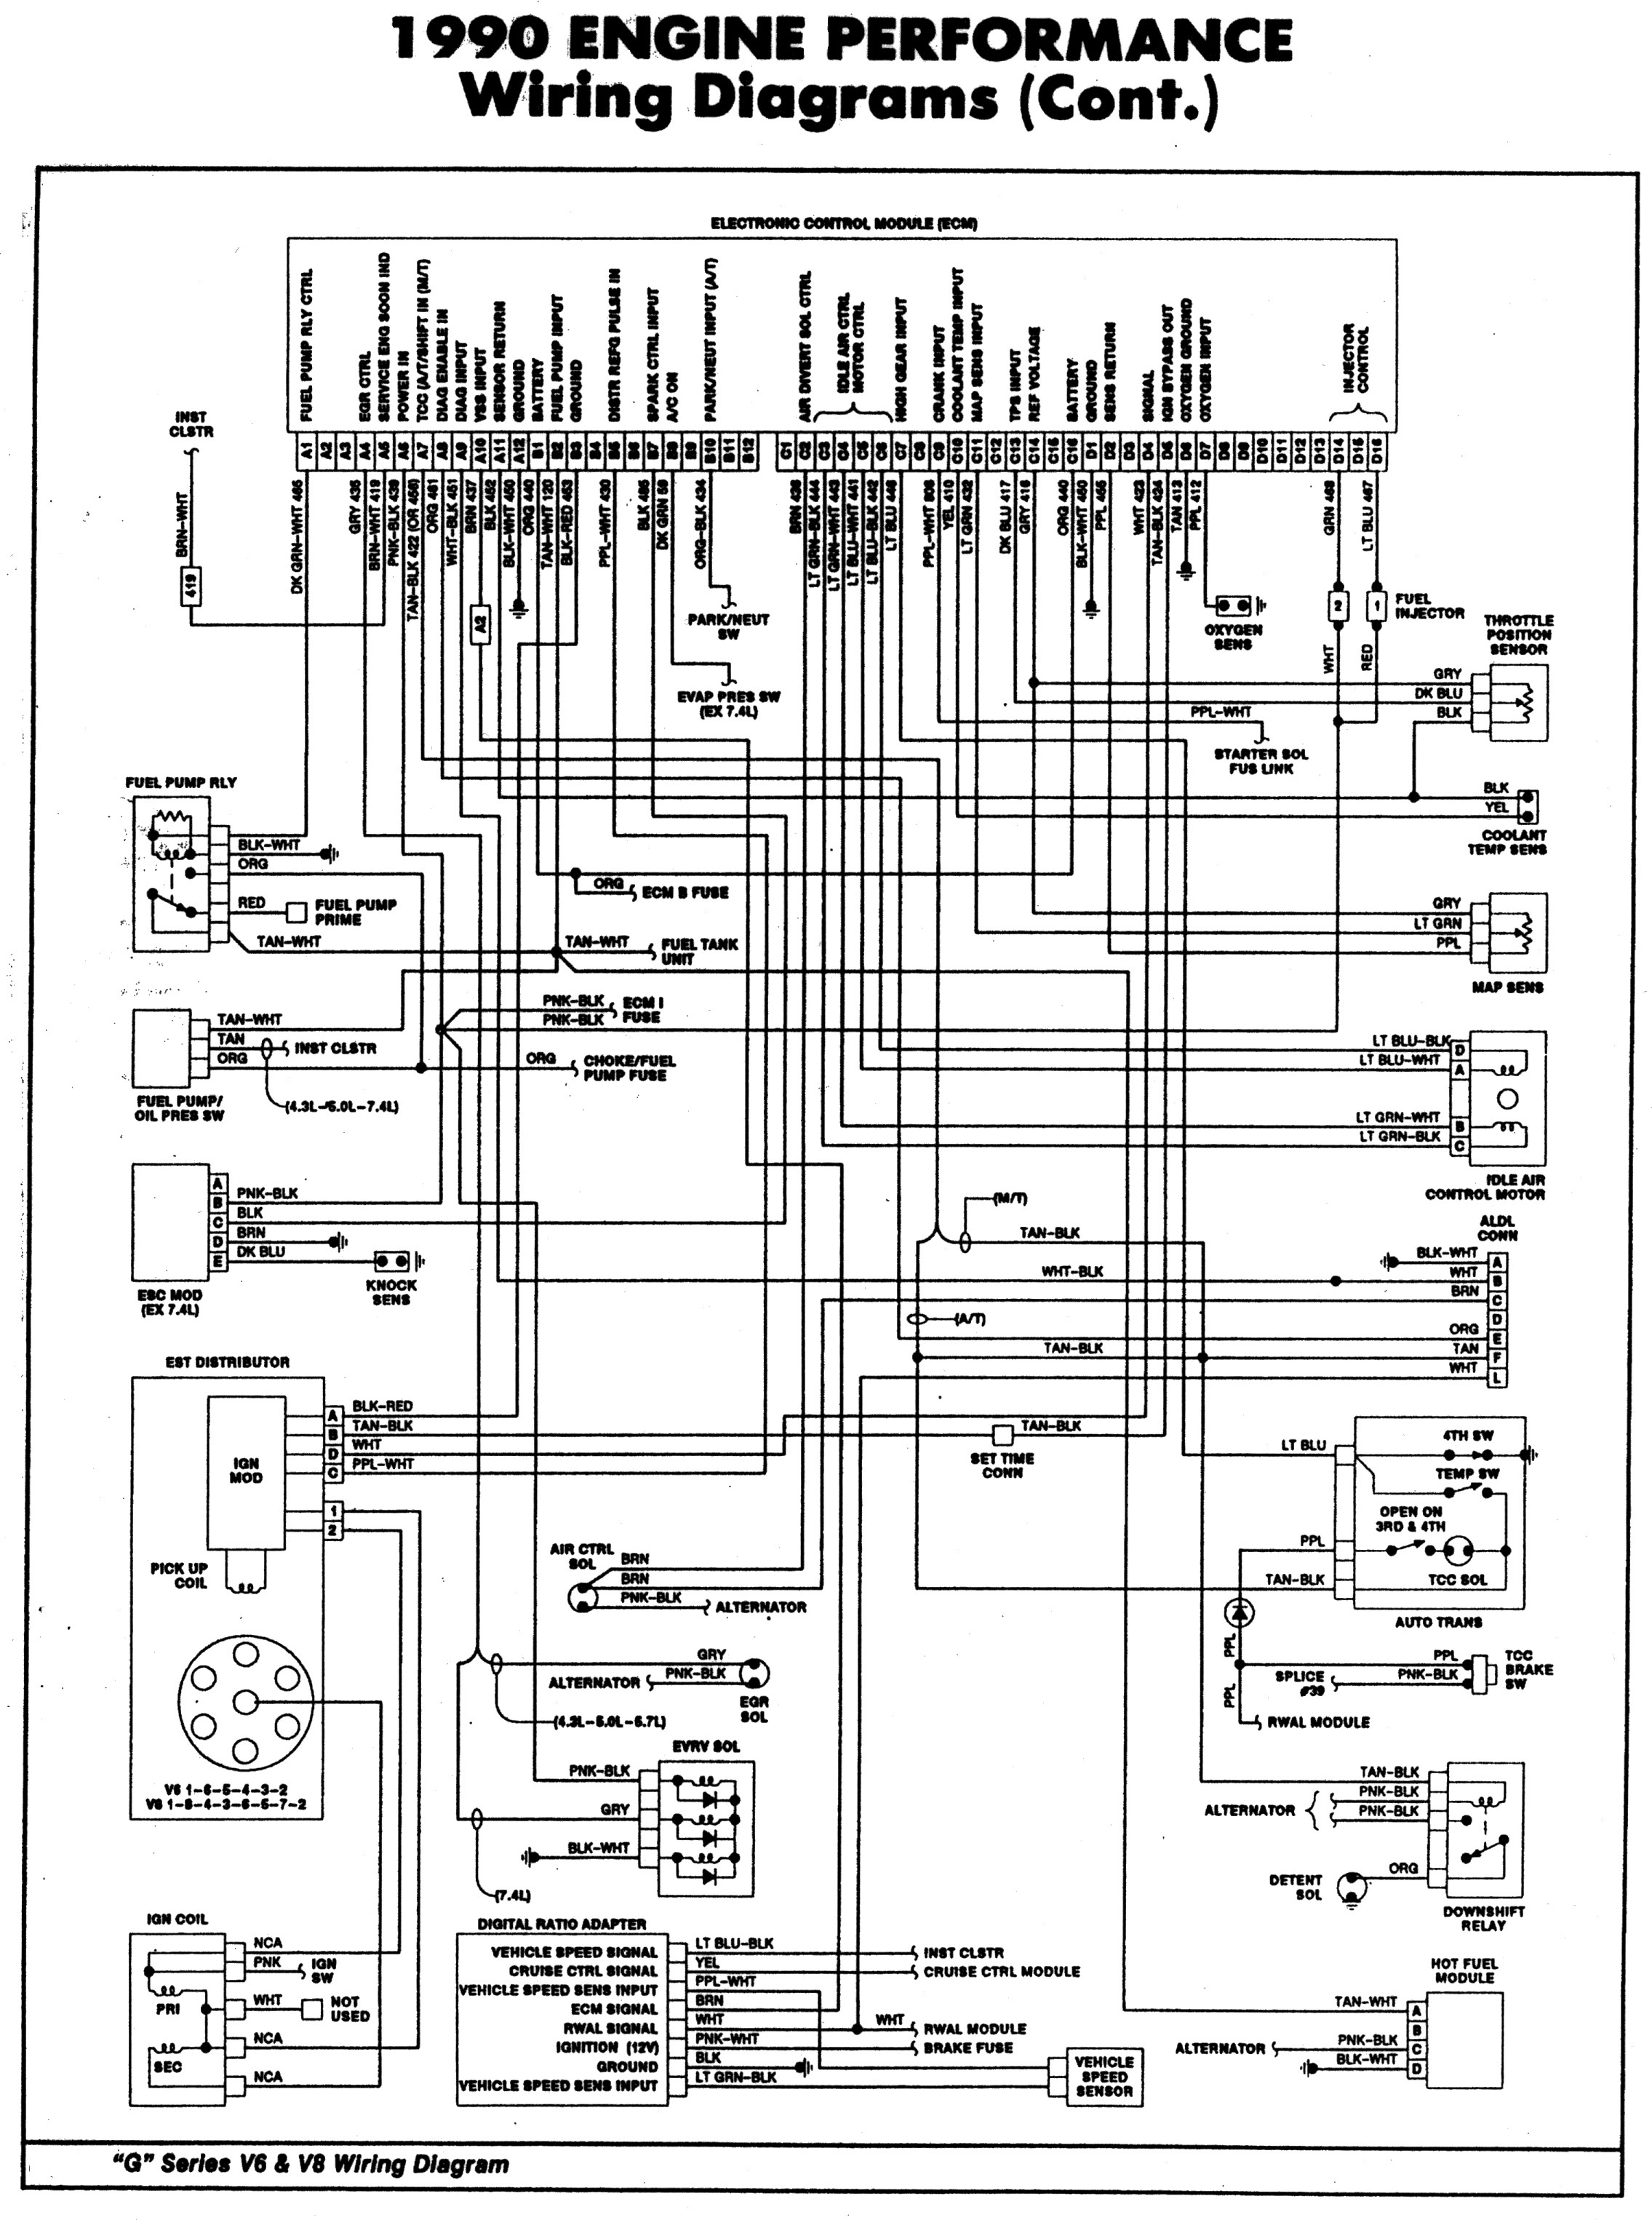 ignitiondiagram 1990 chevy suburban tbi 350 installation land 1990 suburban fuel pump wiring diagram 1990 suburban wiring diagram [ 2271 x 3051 Pixel ]